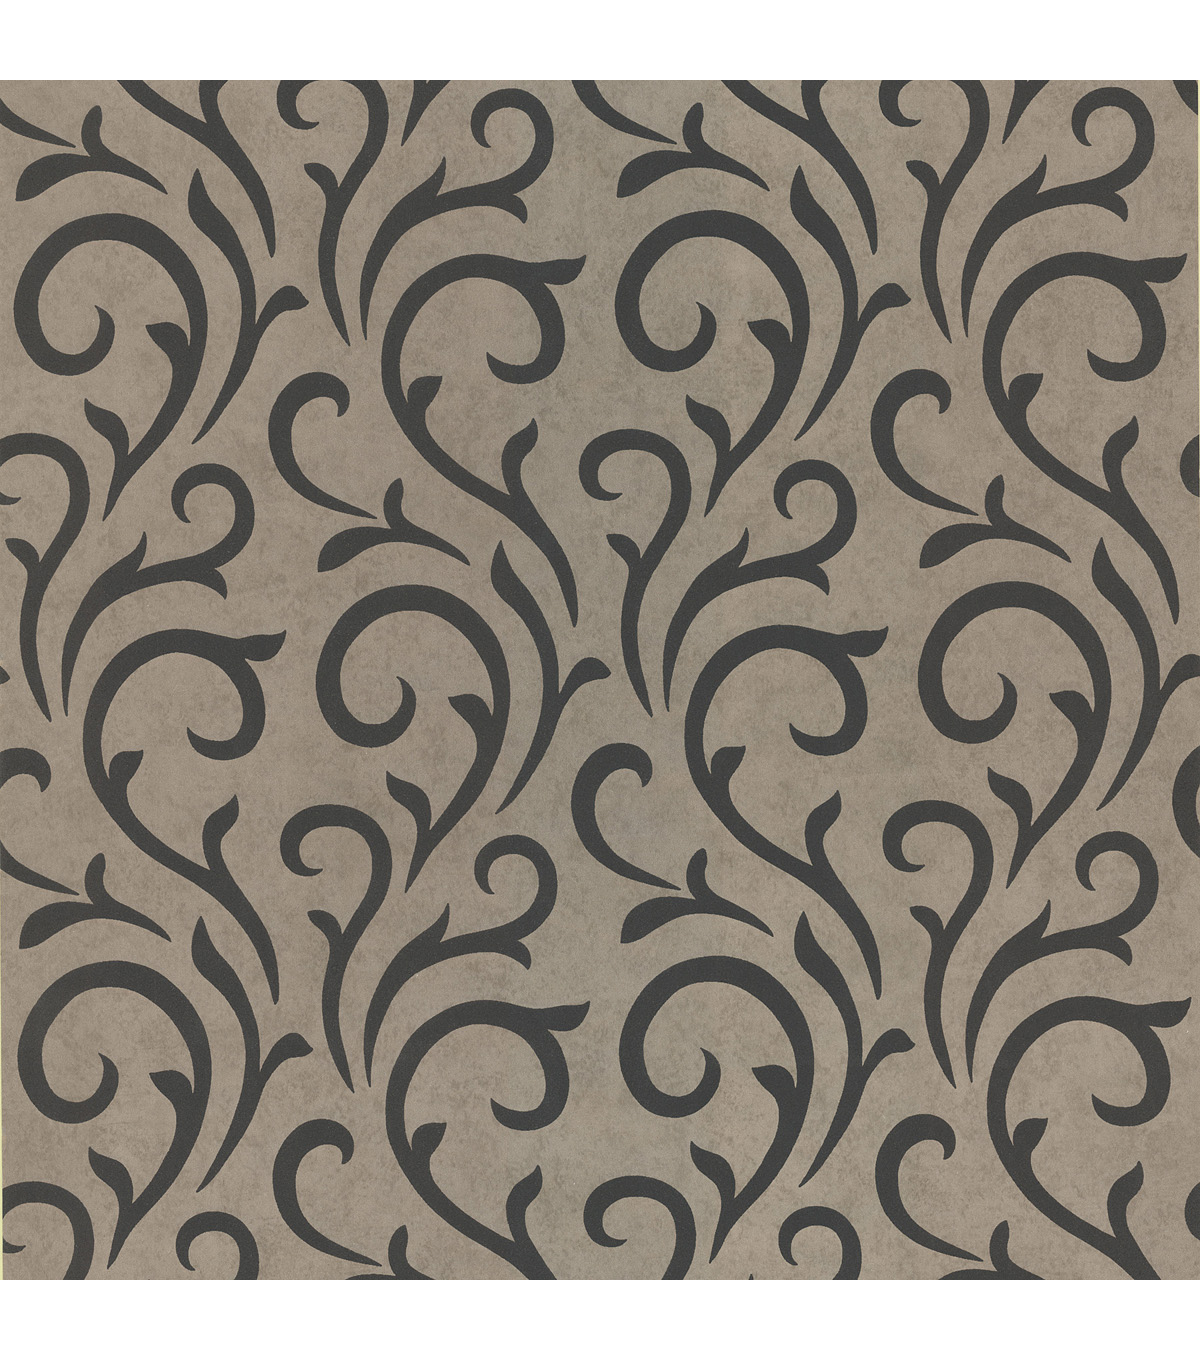 Ophelia Charcoal Scroll Wallpaper